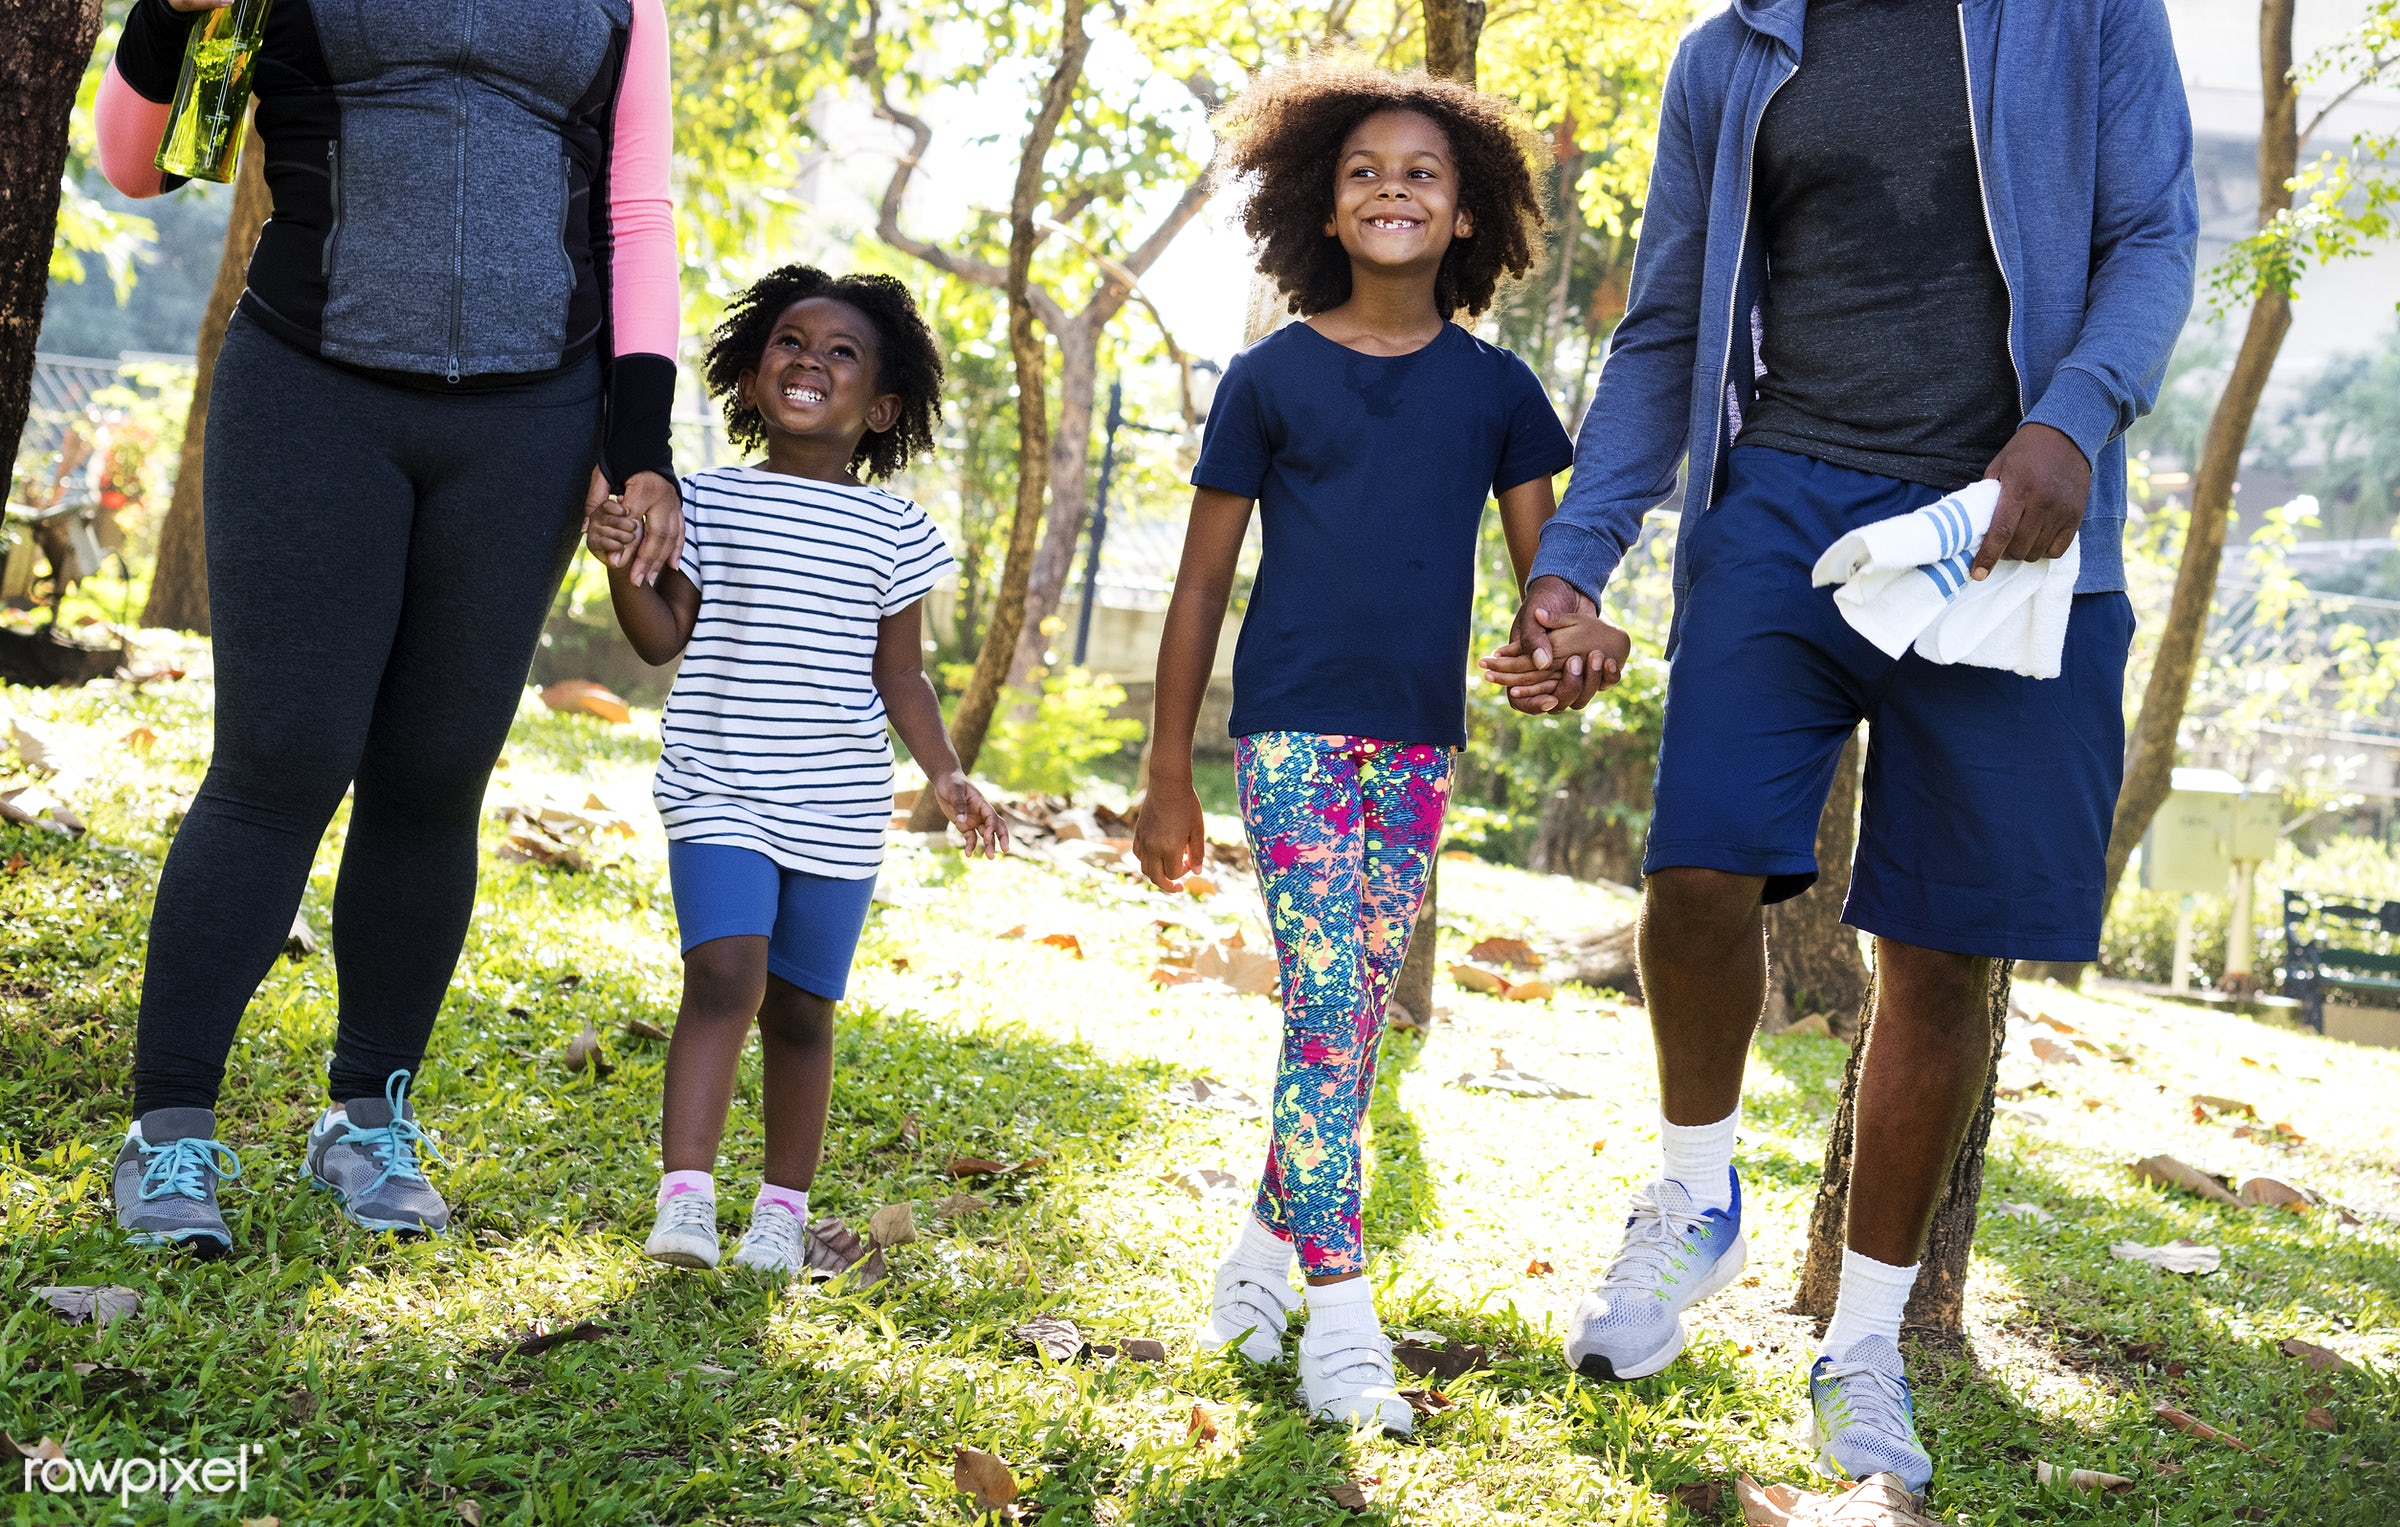 parents, african, land, daughter, exercise, recreation, father, related, sister, love, nature, green area, family, wellness...